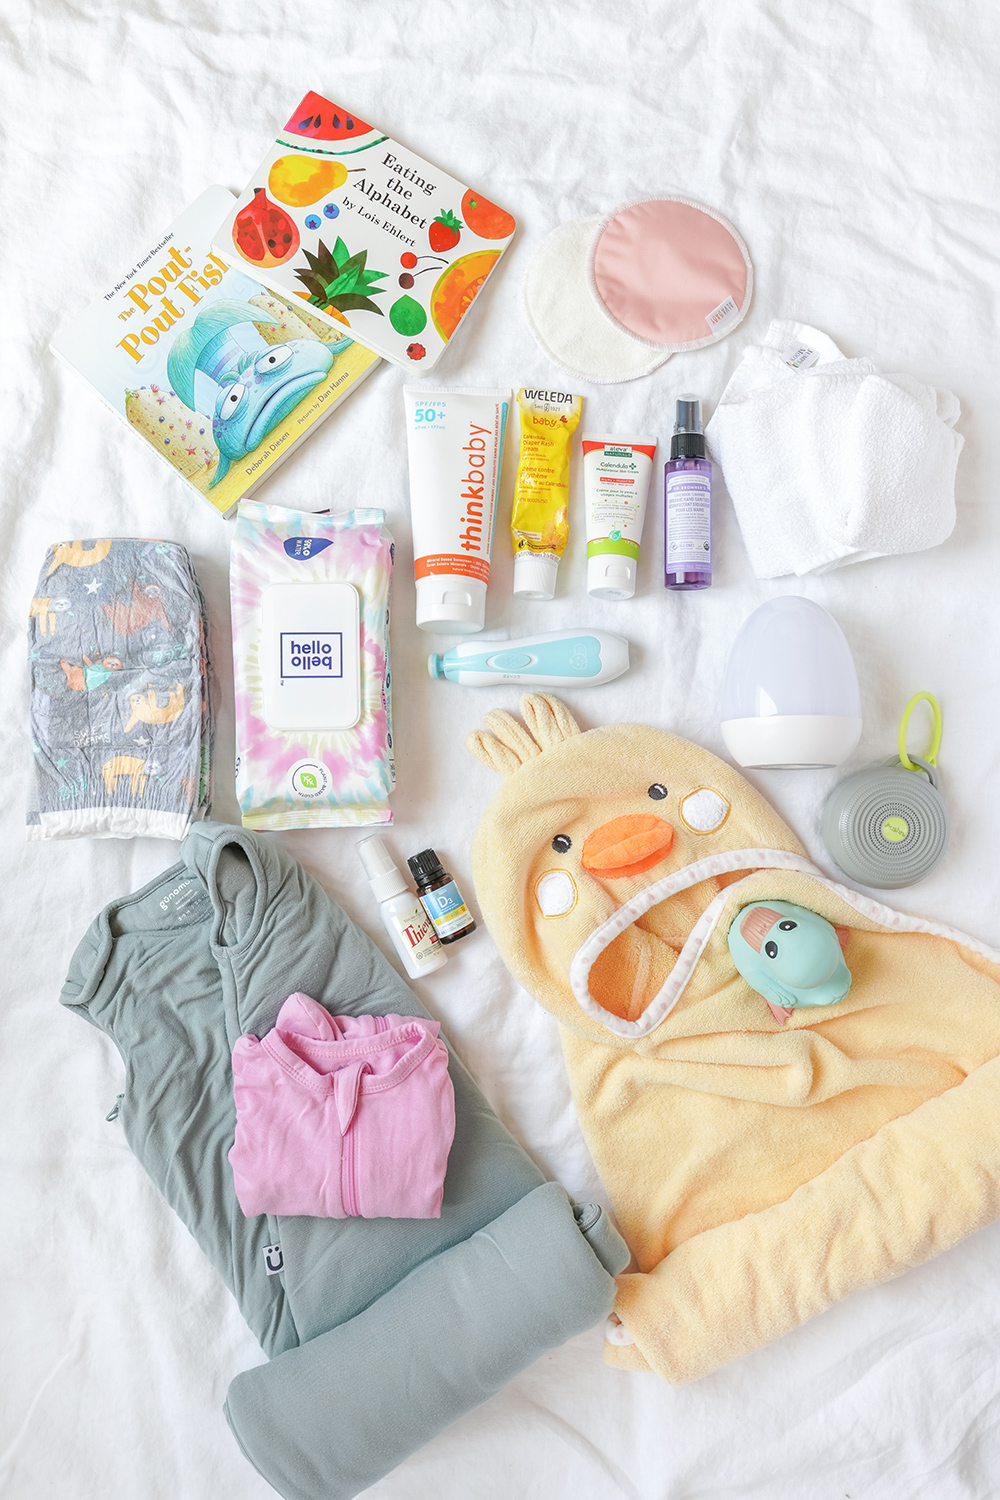 a selection of baby toiletries and sleep supplies on a white sheet